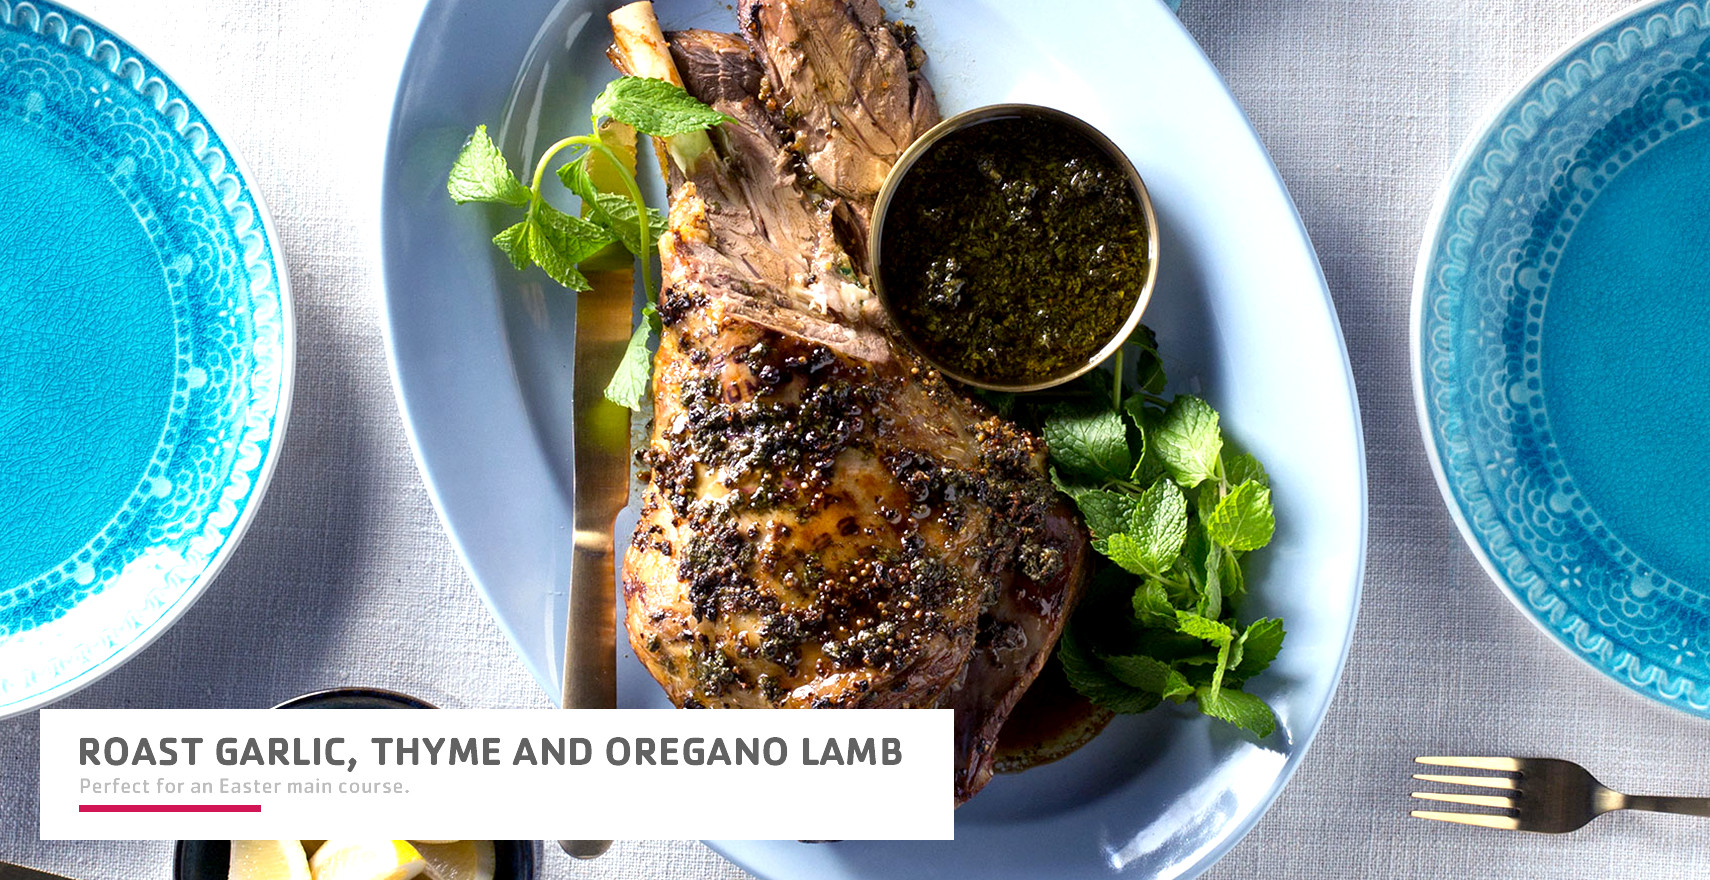 Roast garlic thyme and oregano lamb header image.jpg